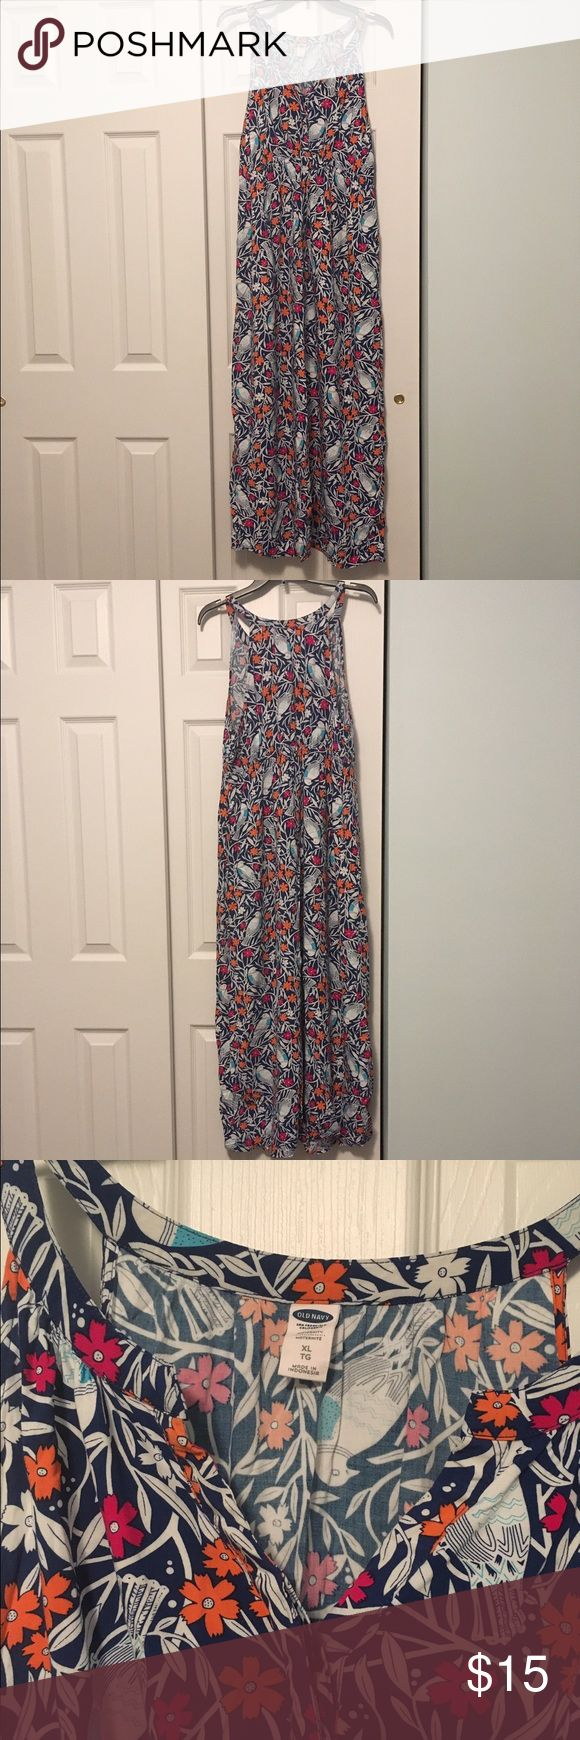 Old Navy maternity maxi dress size XL Old Navy maternity maxi dress. Size XL. Beautiful pattern. Comfortable. Pretty spring pattern. Great condition. Old Navy Dresses Maxi